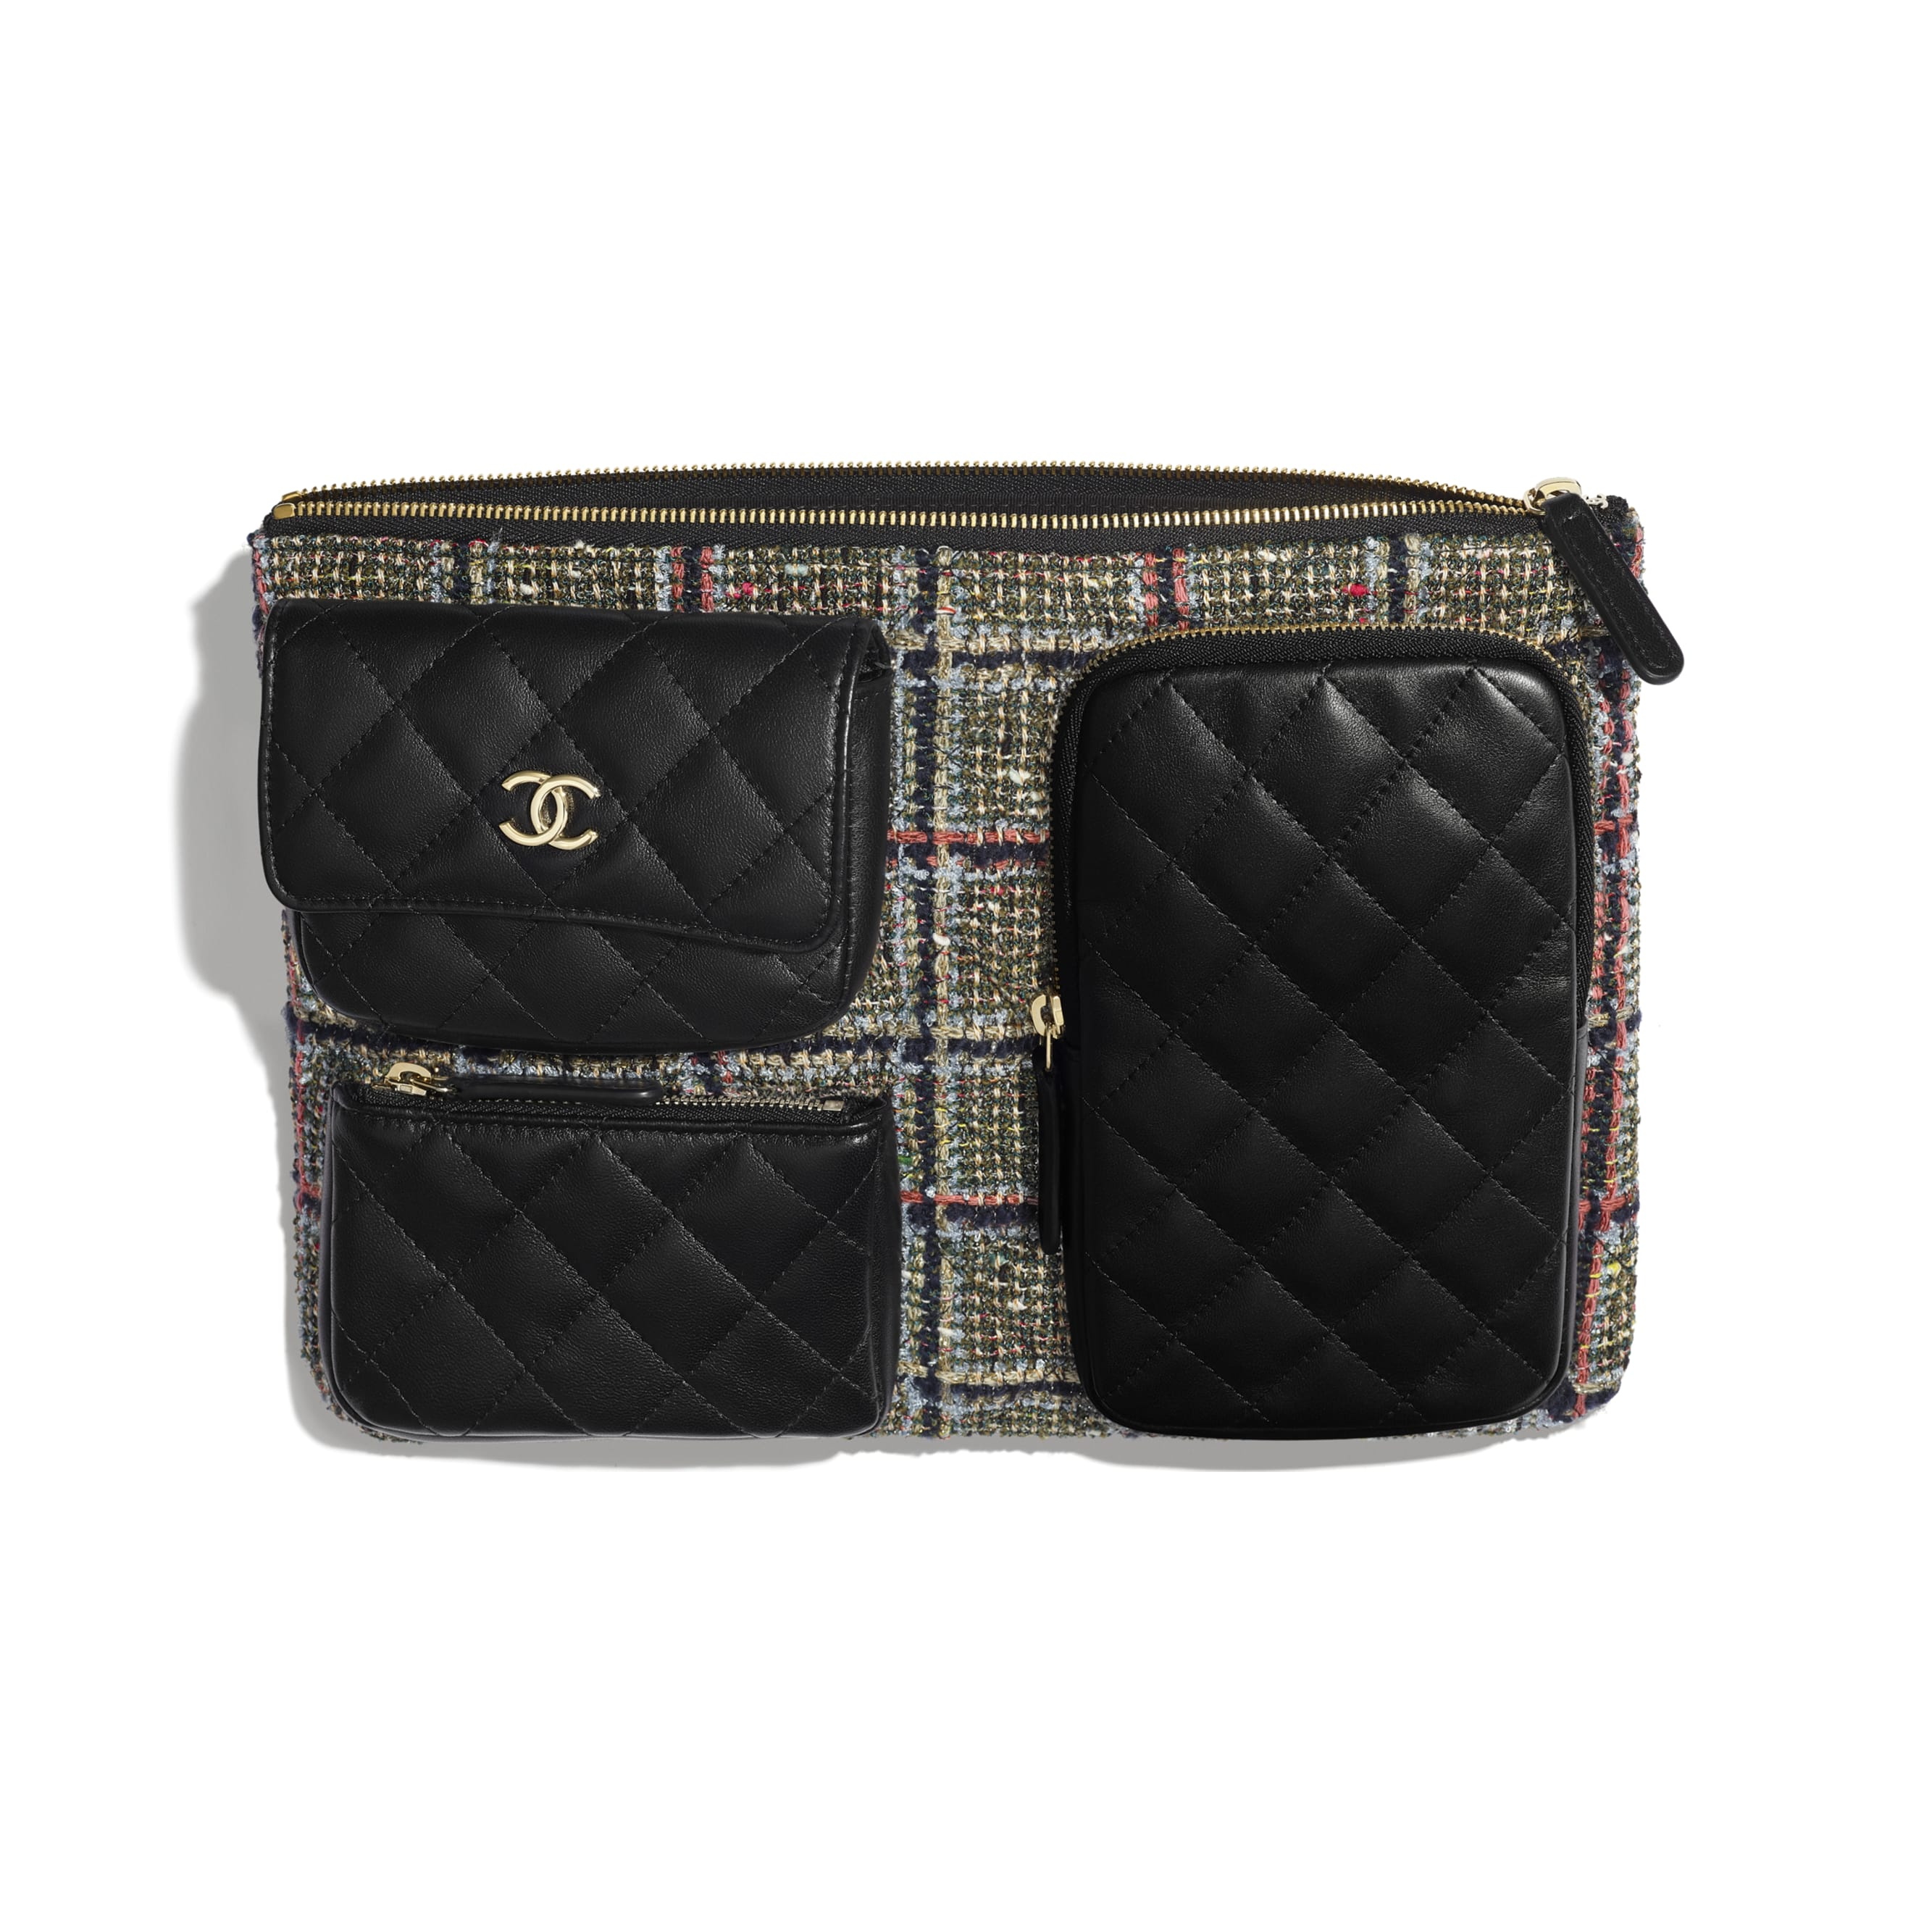 Pouch - Black, Khaki, Gray & Red - Tweed, Lambskin & Gold-Tone Metal - CHANEL - Other view - see standard sized version